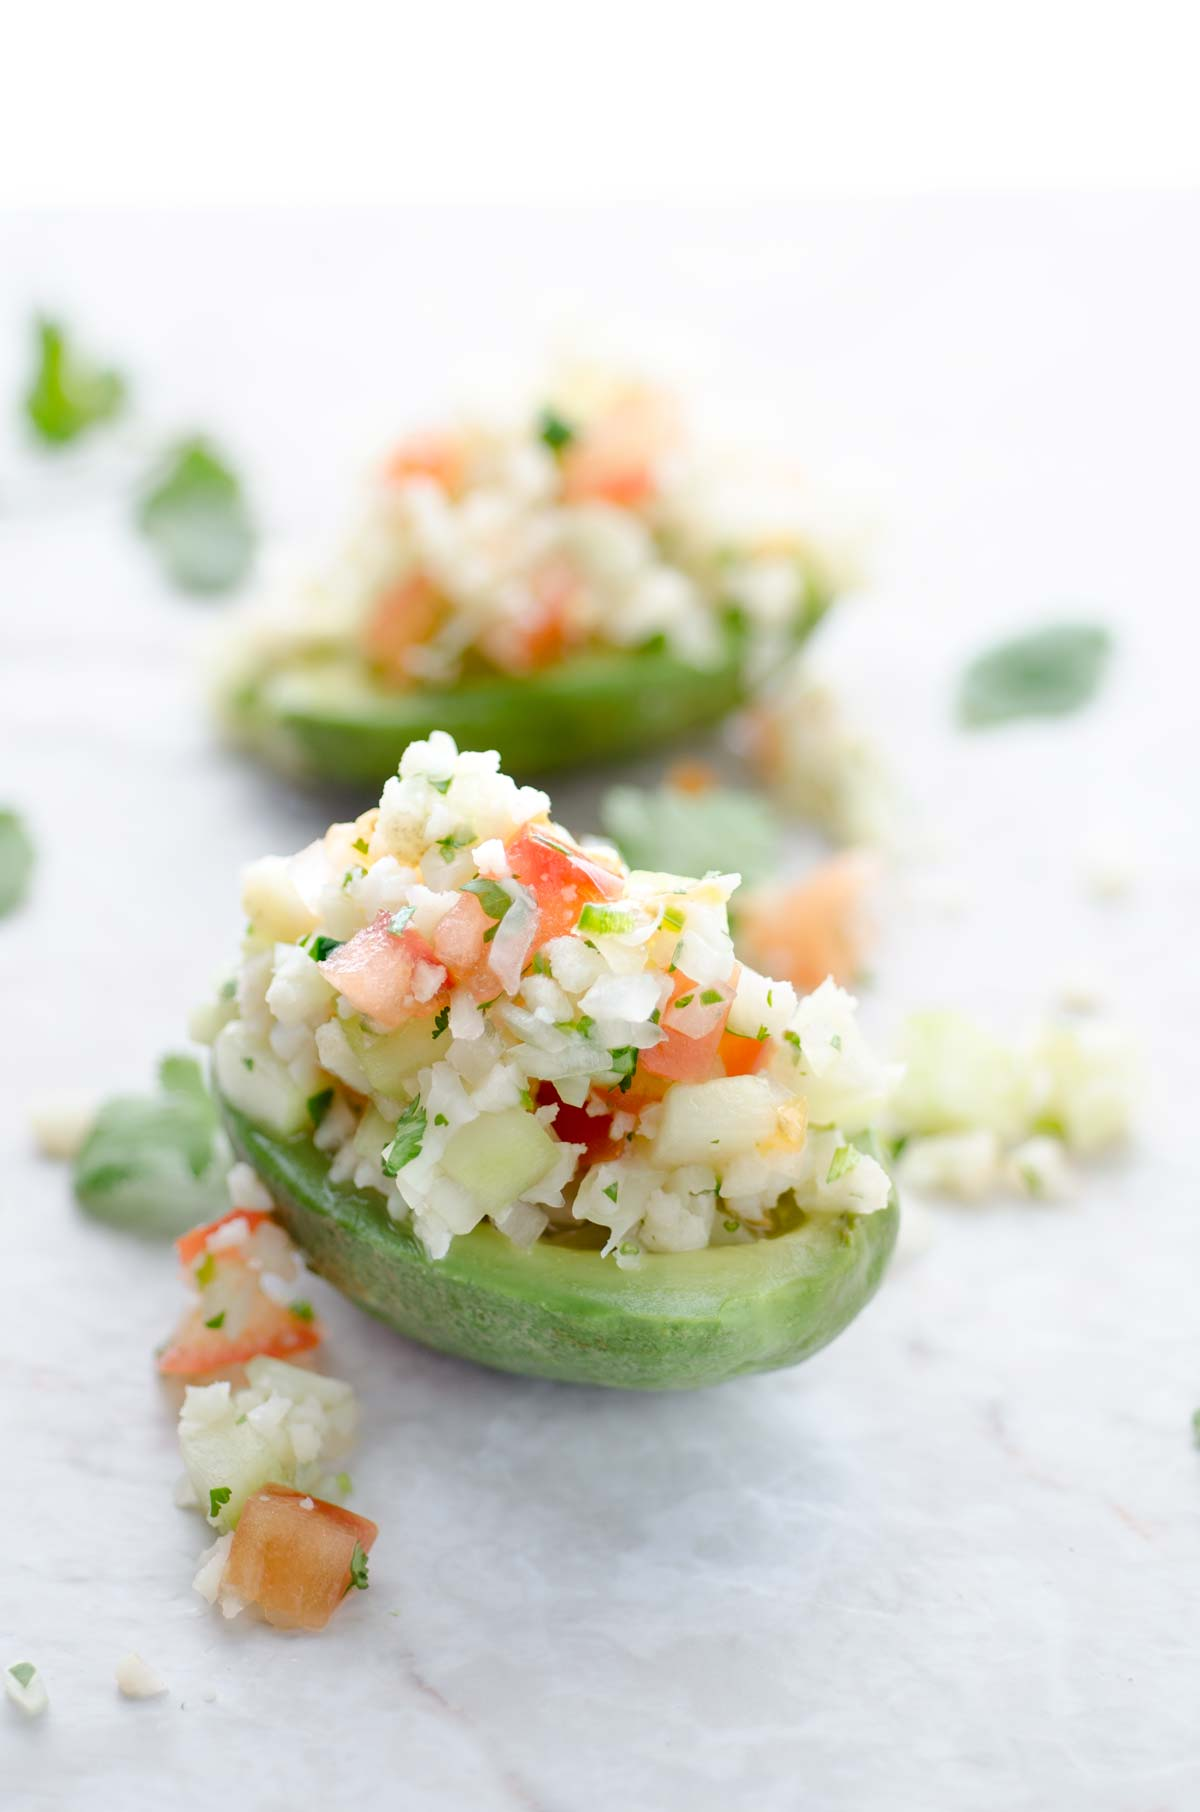 This recipe for cauliflower ceviche is tangy, spicy, and refreshing. It is an easy to male appetizer. Serve with chips and avocado.